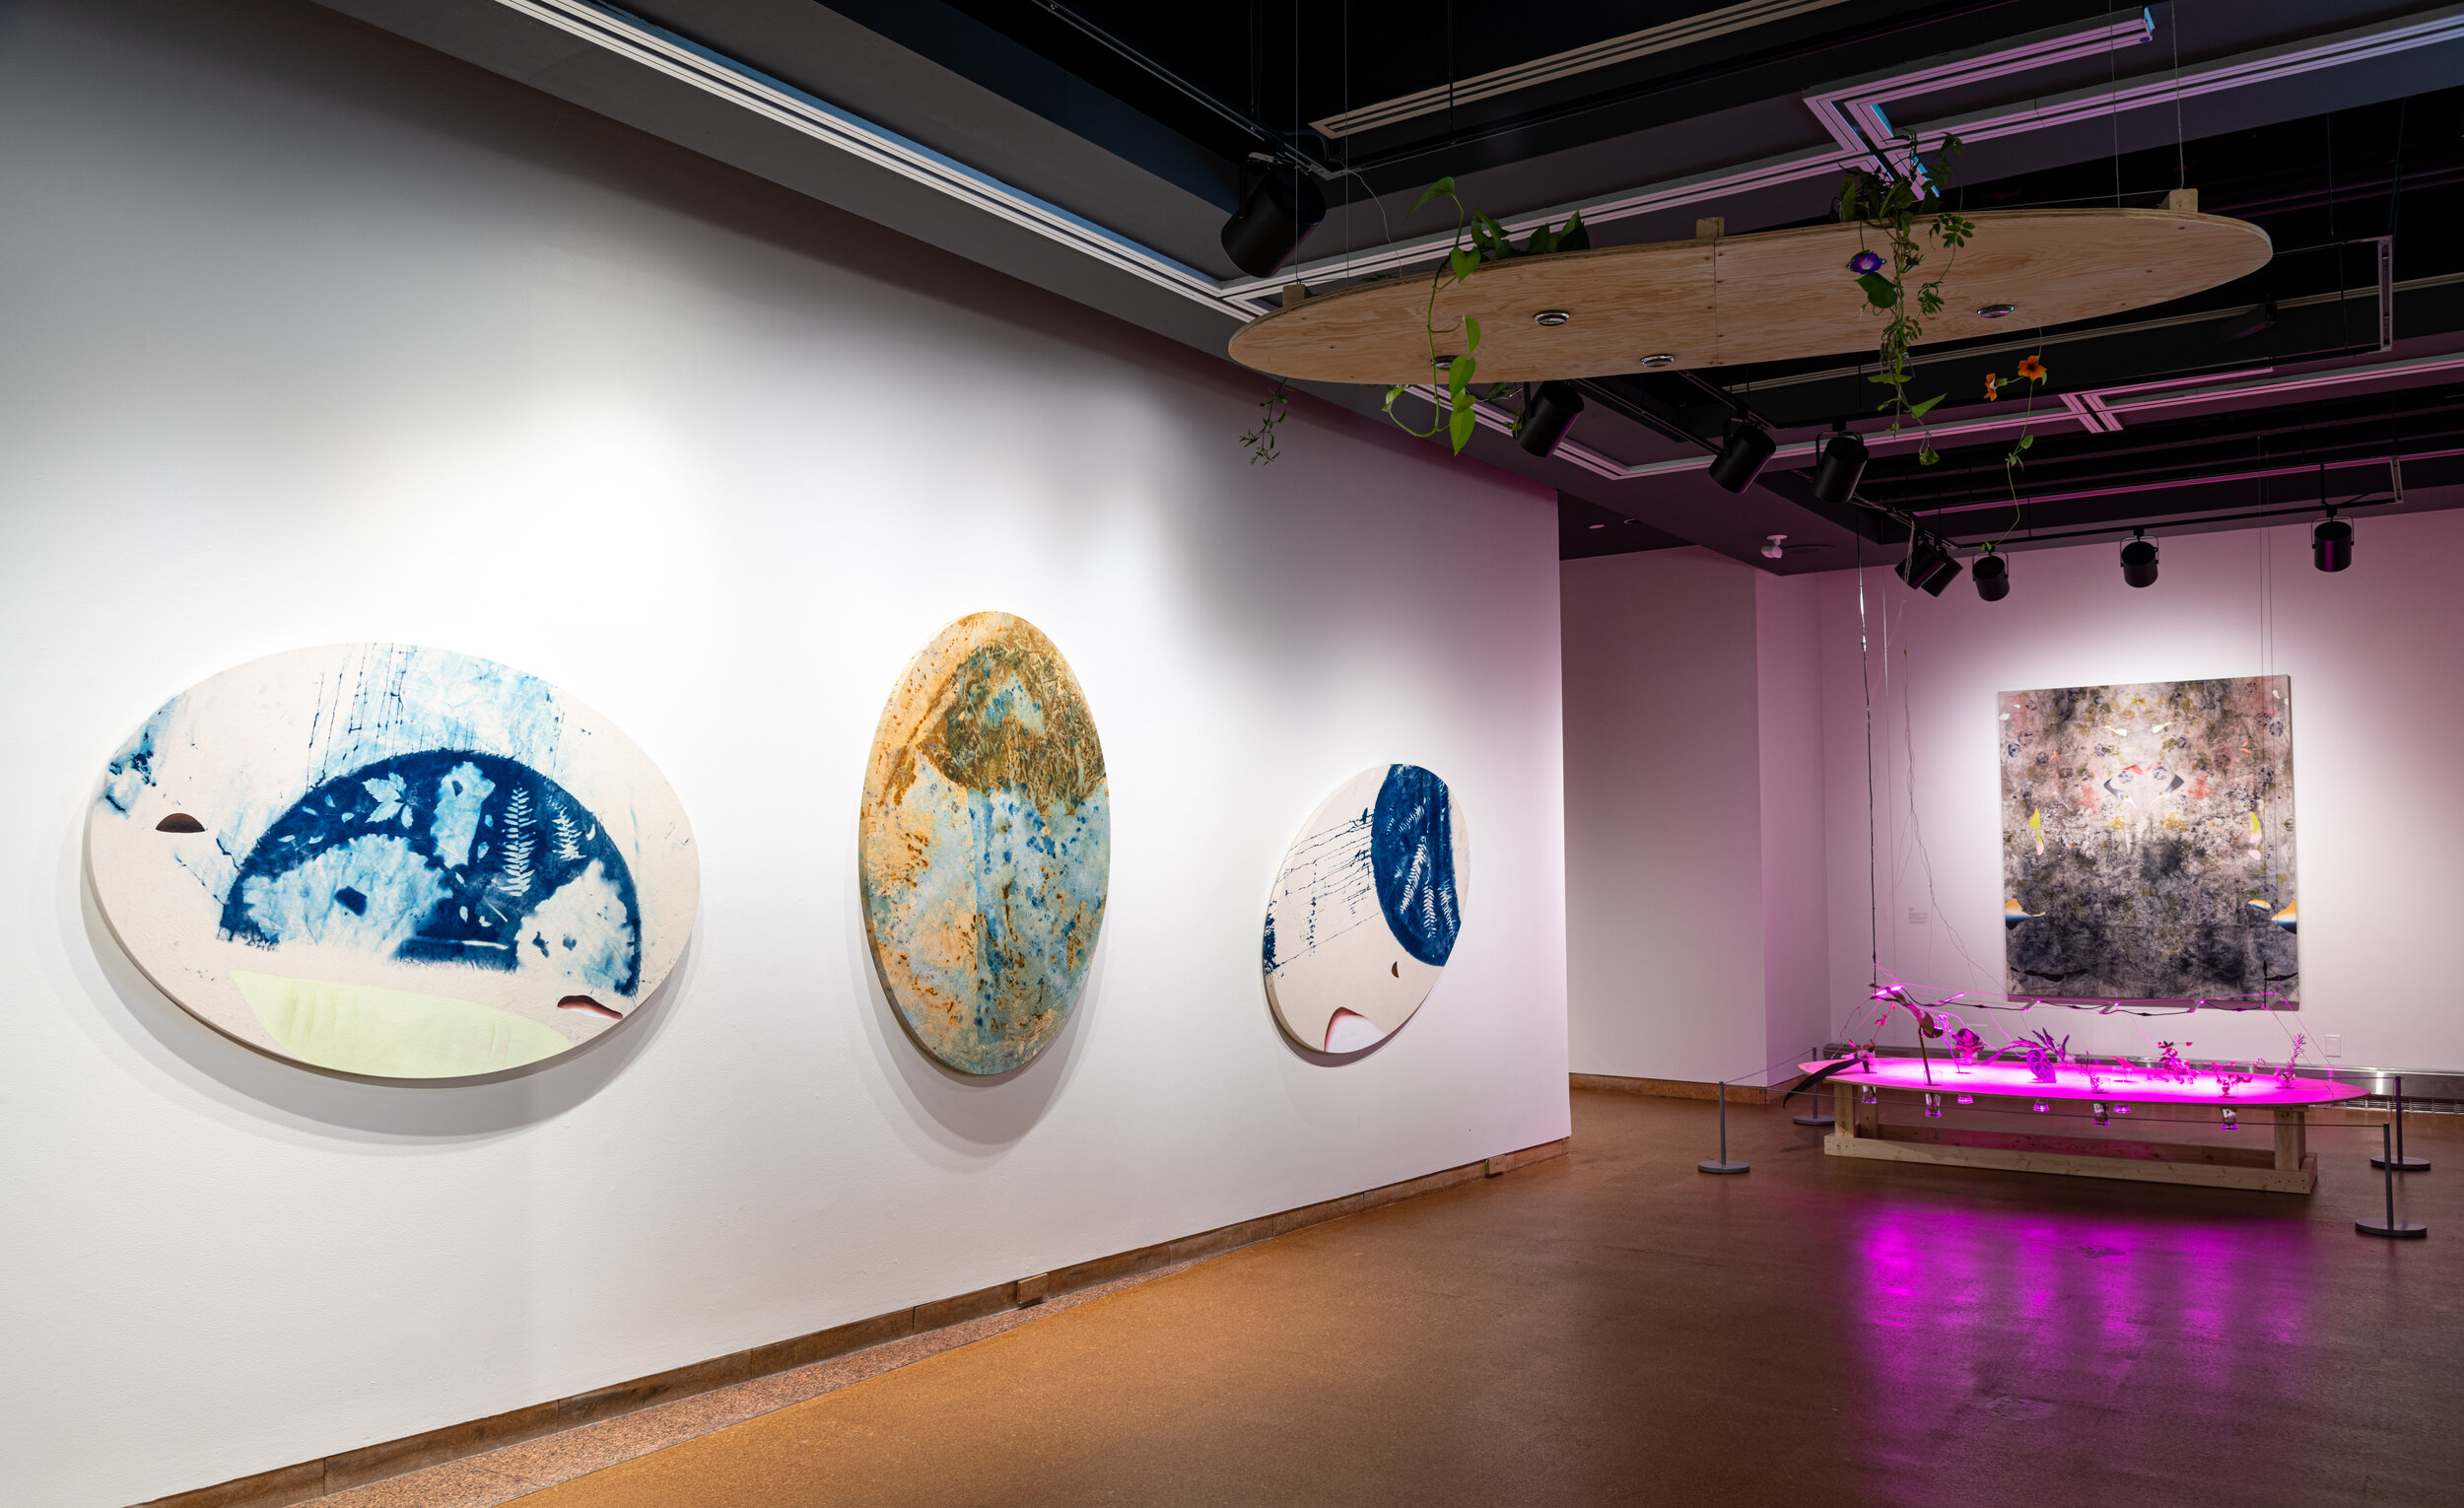 TERRAMATTER Installation, Group Exhibition at the City Hall Art Gallery, Ottawa, On, 2019